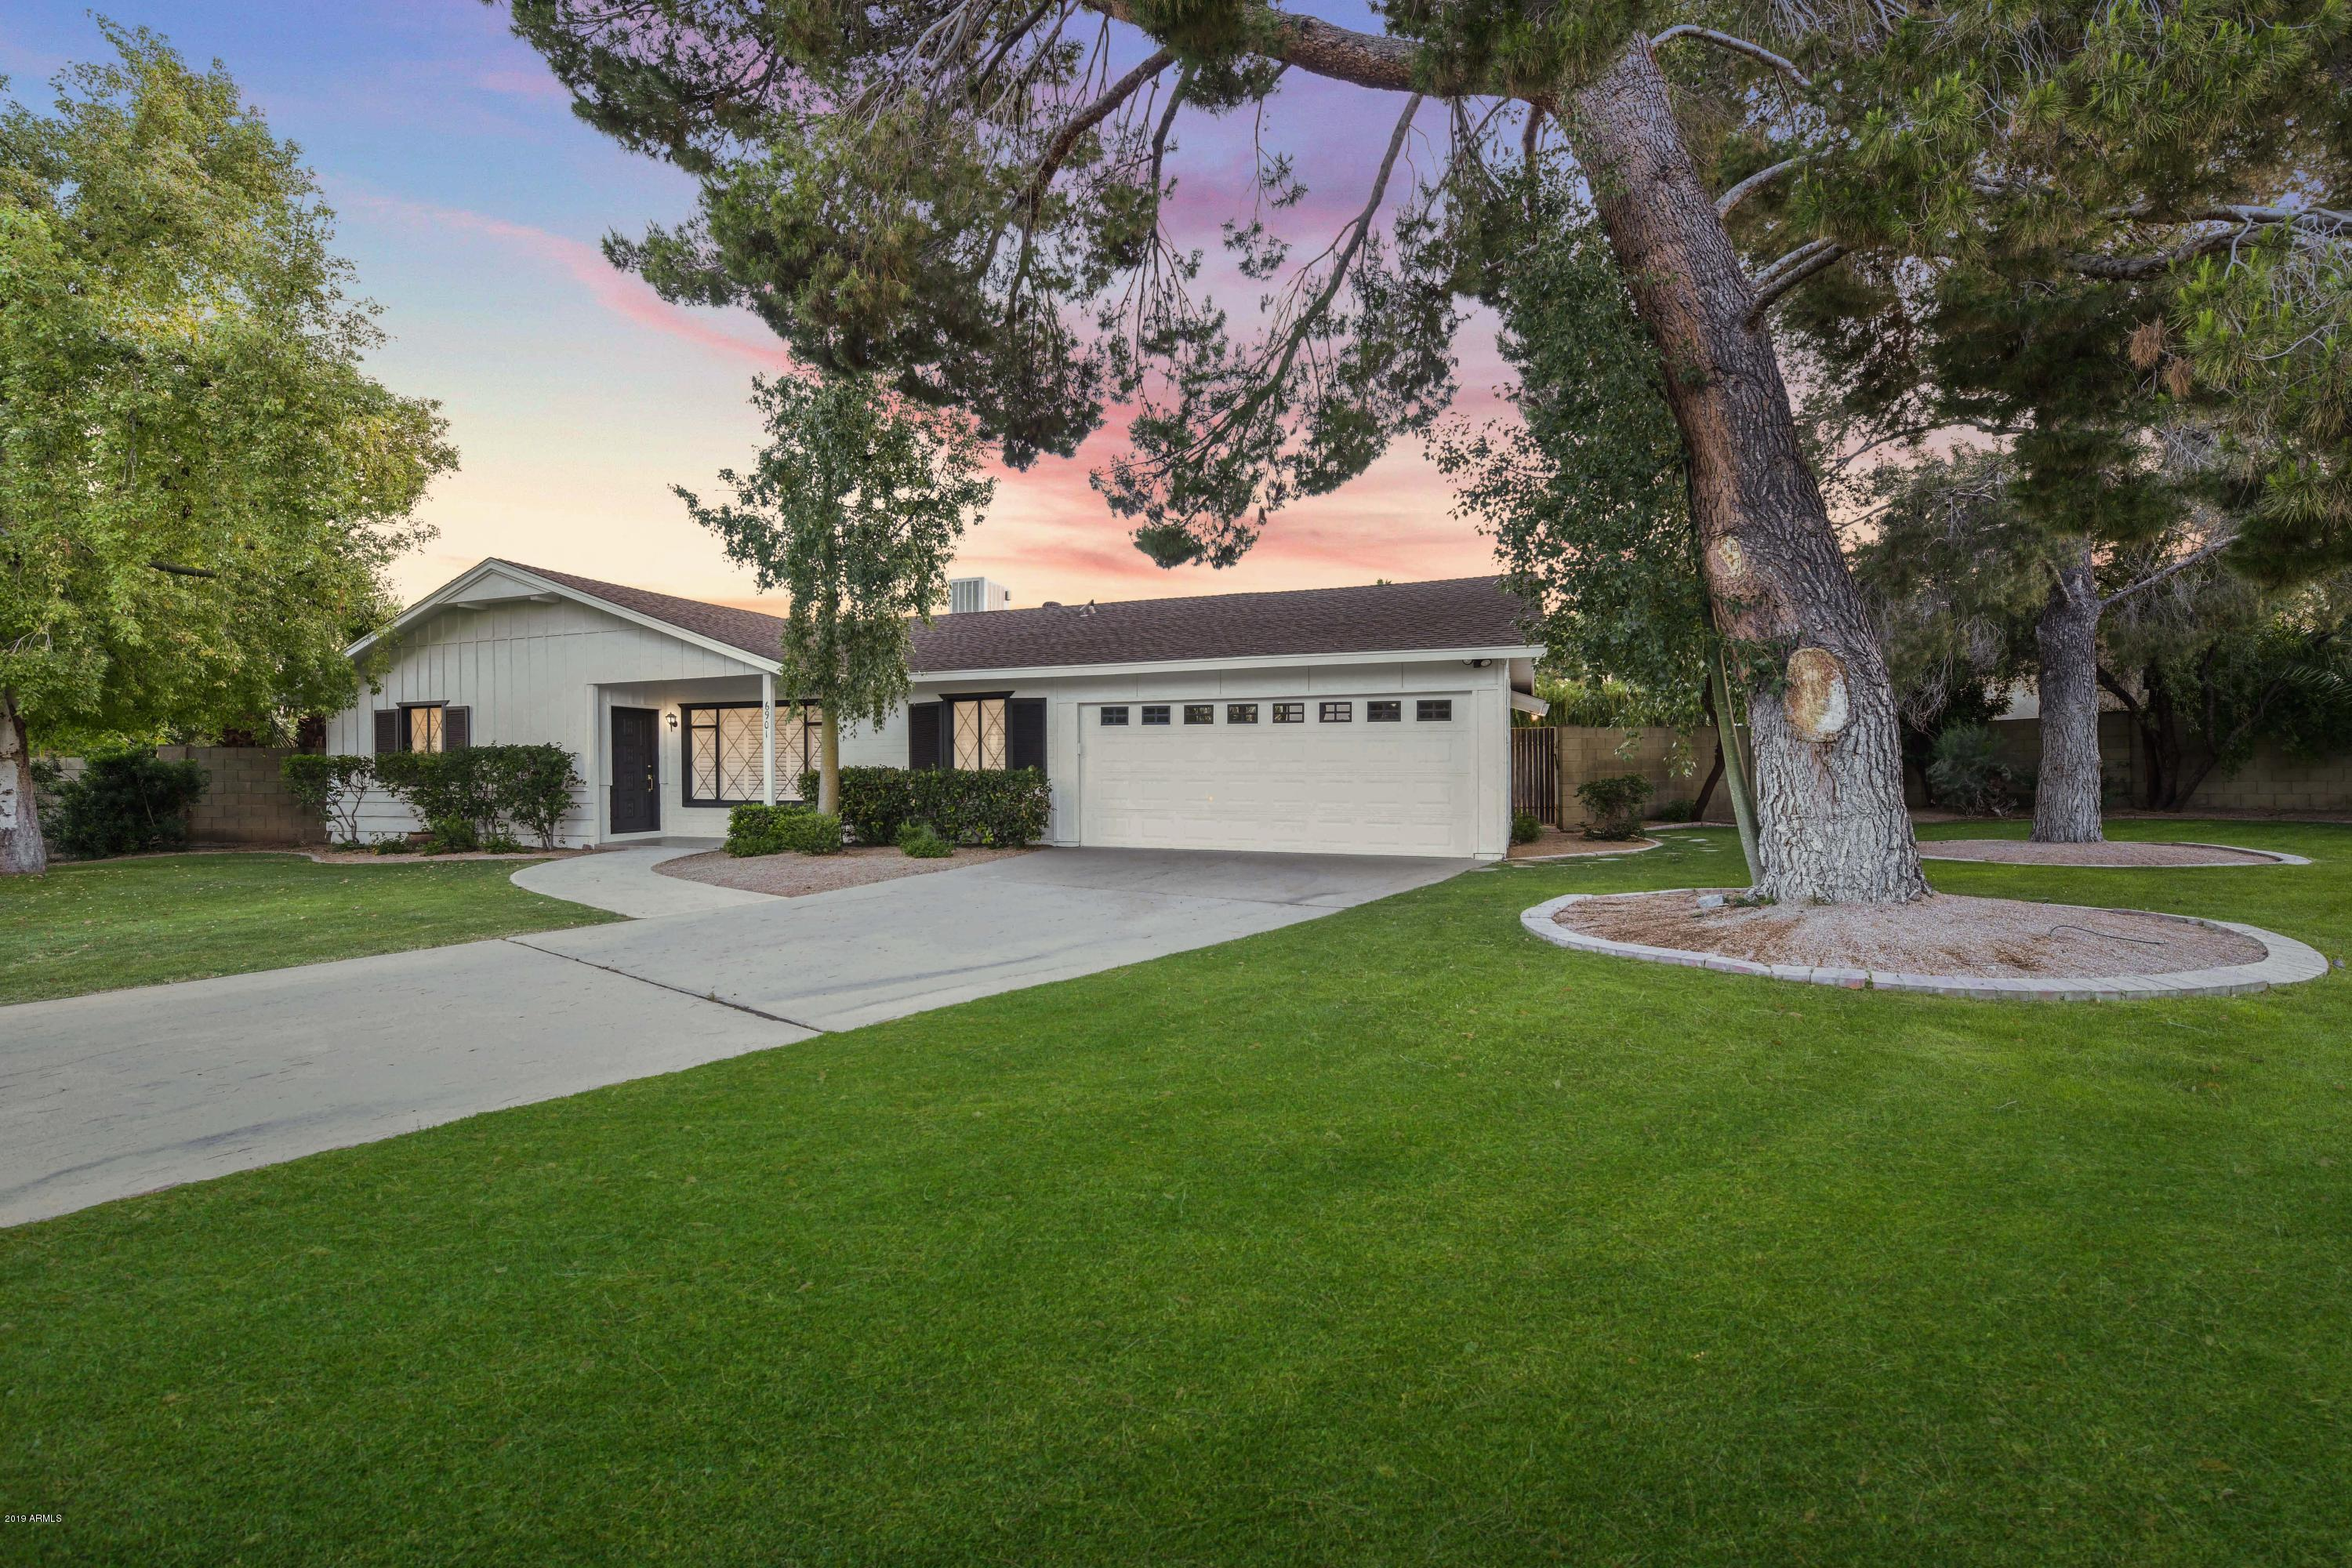 Photo of 6901 E ORANGE BLOSSOM Drive, Paradise Valley, AZ 85253